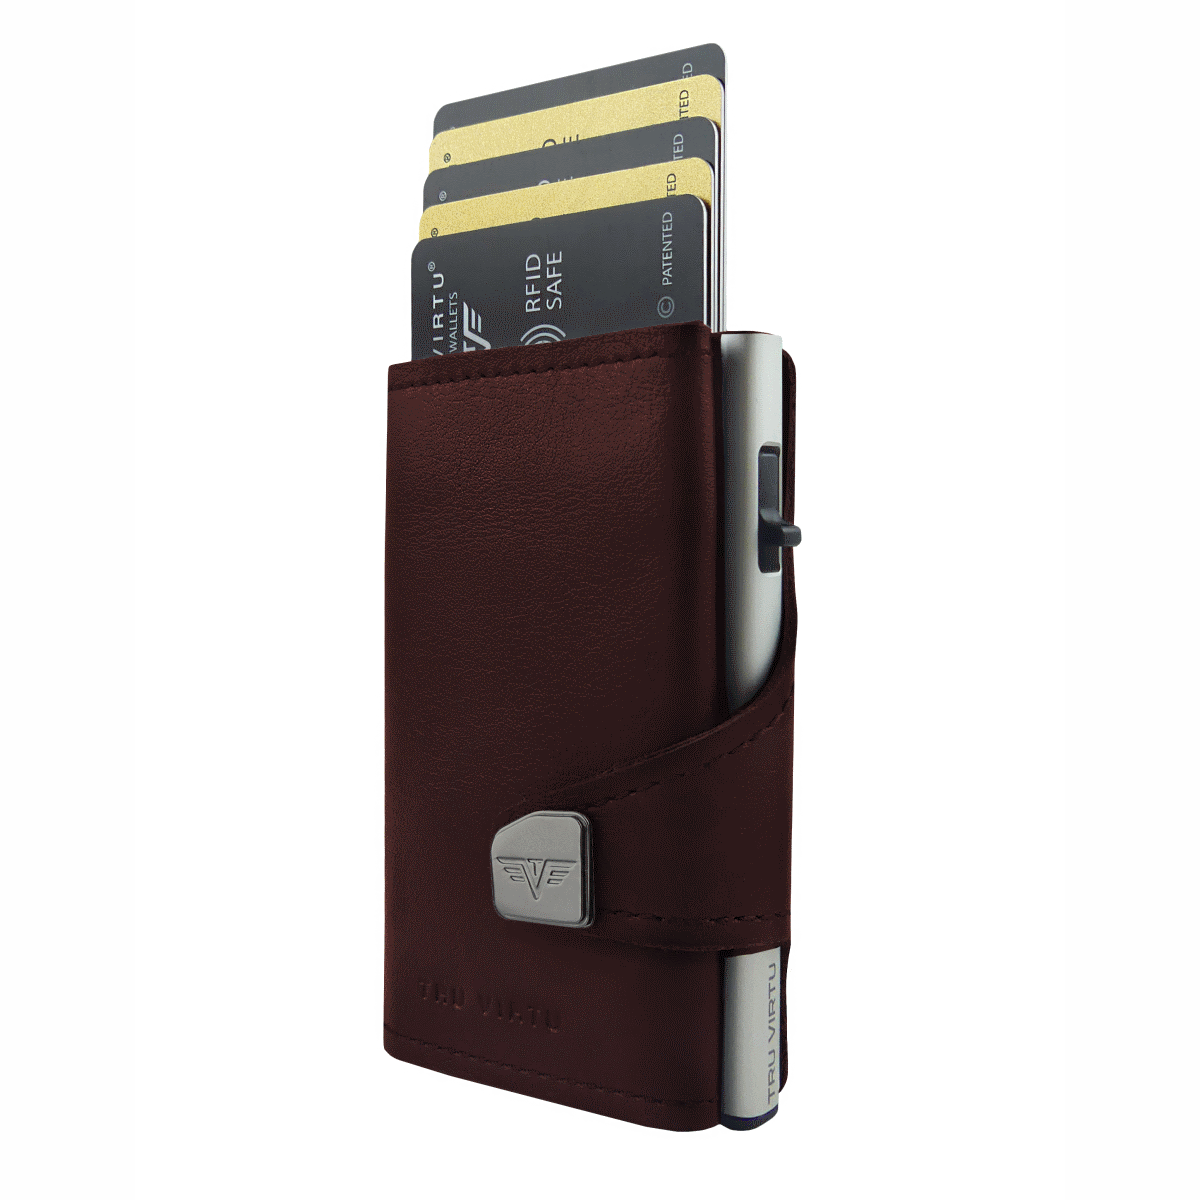 TRU VIRTU Click n Slide Wallet With Coin Pocket - Brown